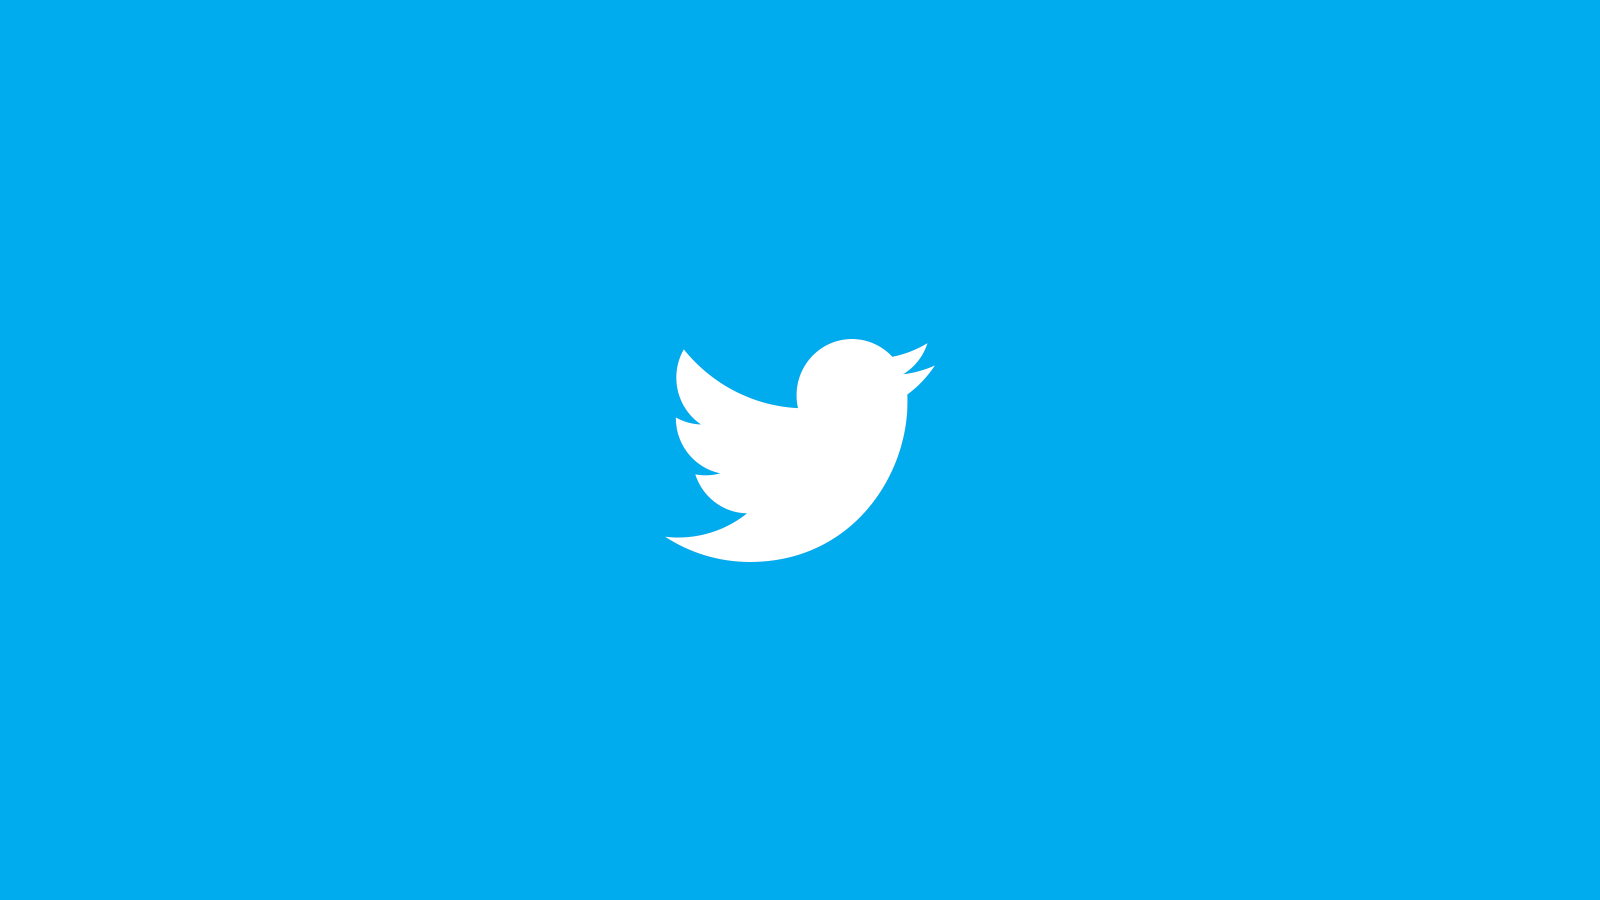 Official Twitter app for Windows 8/RT is now available in